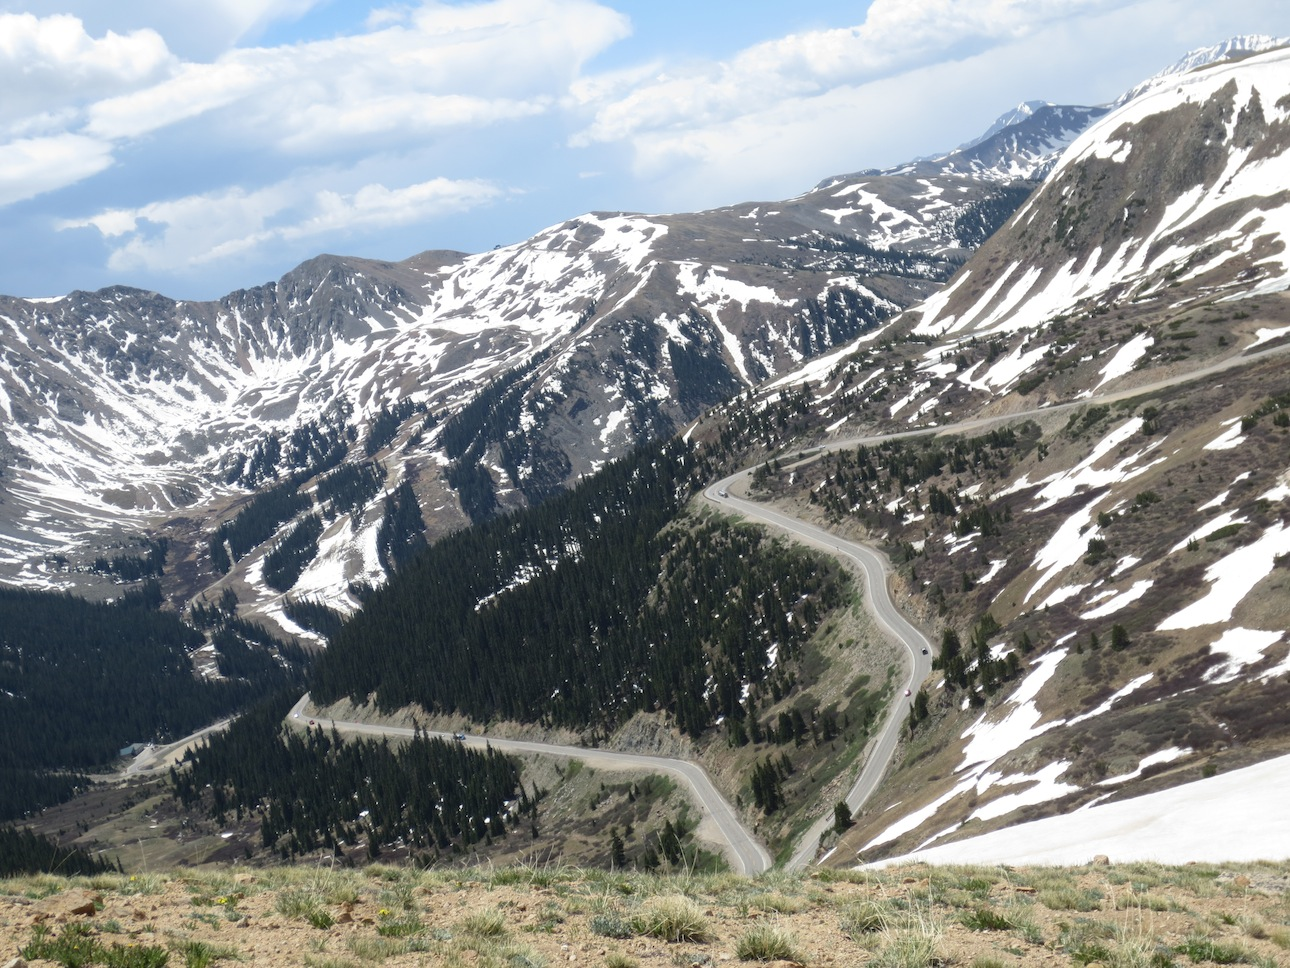 Winding road out of Loveland Pass.